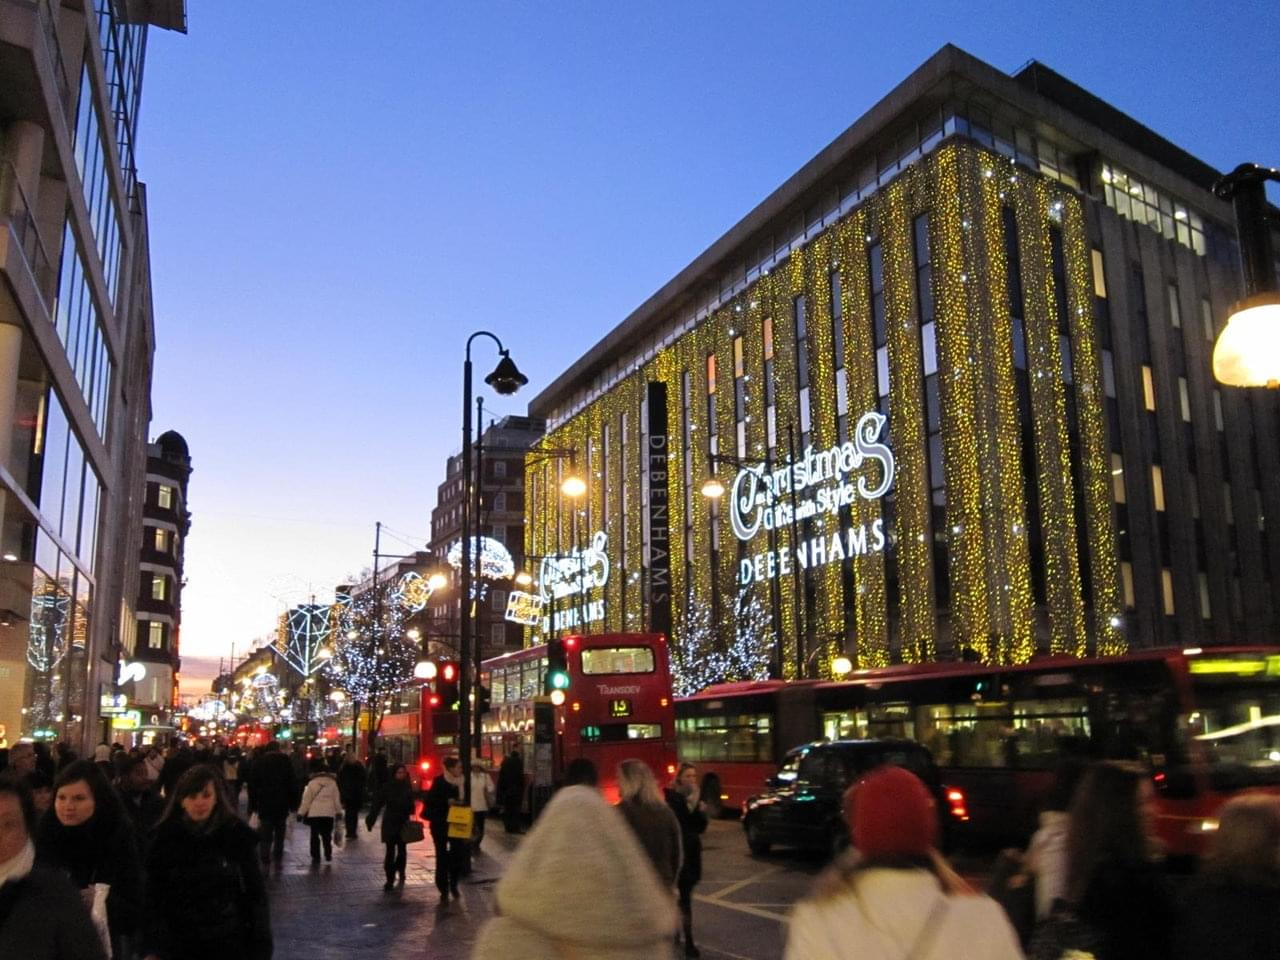 Oxford Street - Shopping